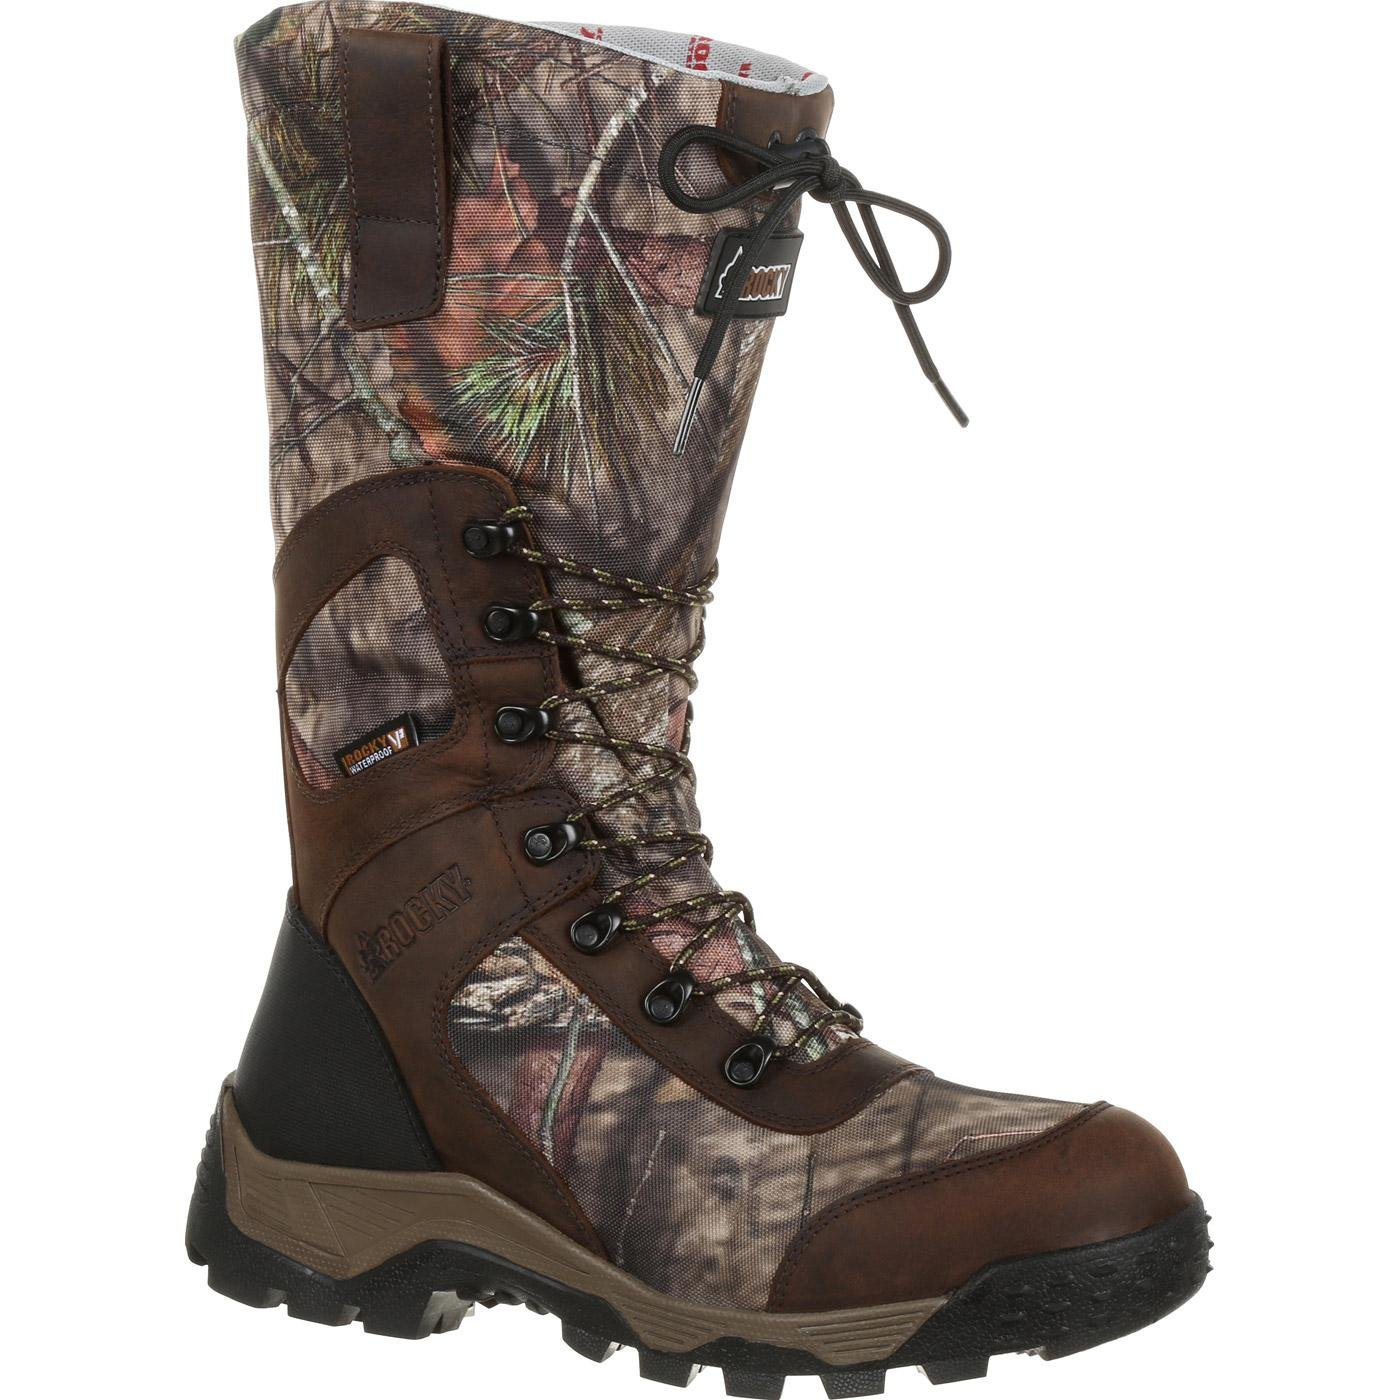 ROCKY Sport Pro Timber Stalker 800G Insulated Waterproof Outdoor Boot by ROCKY